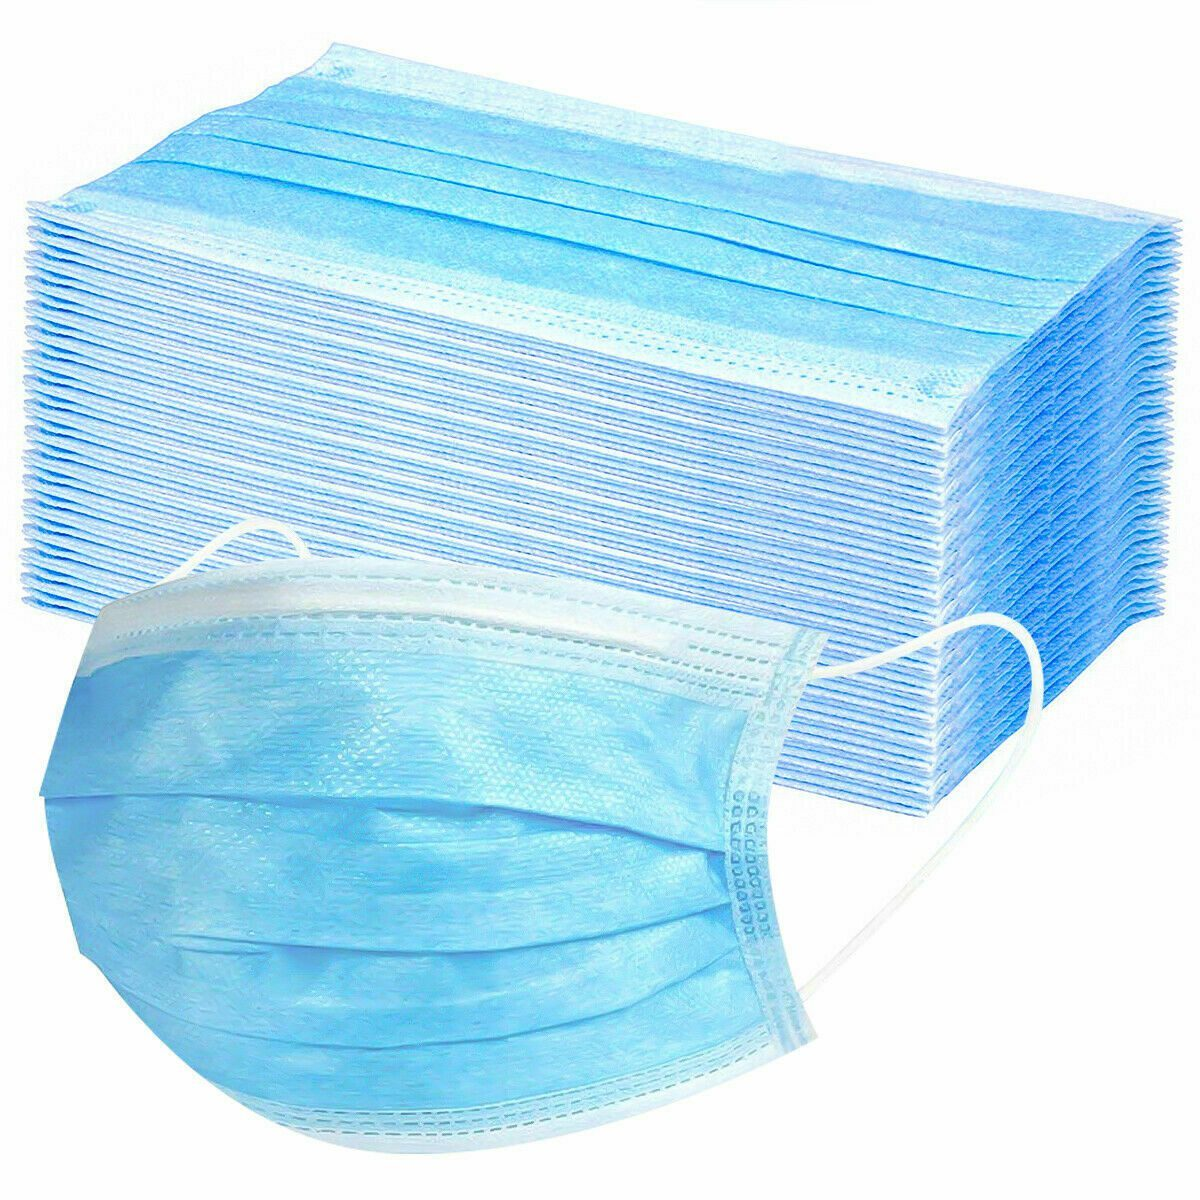 Disposable Face Mask Anti Flu Dust 3 Layer Masks Protective medical